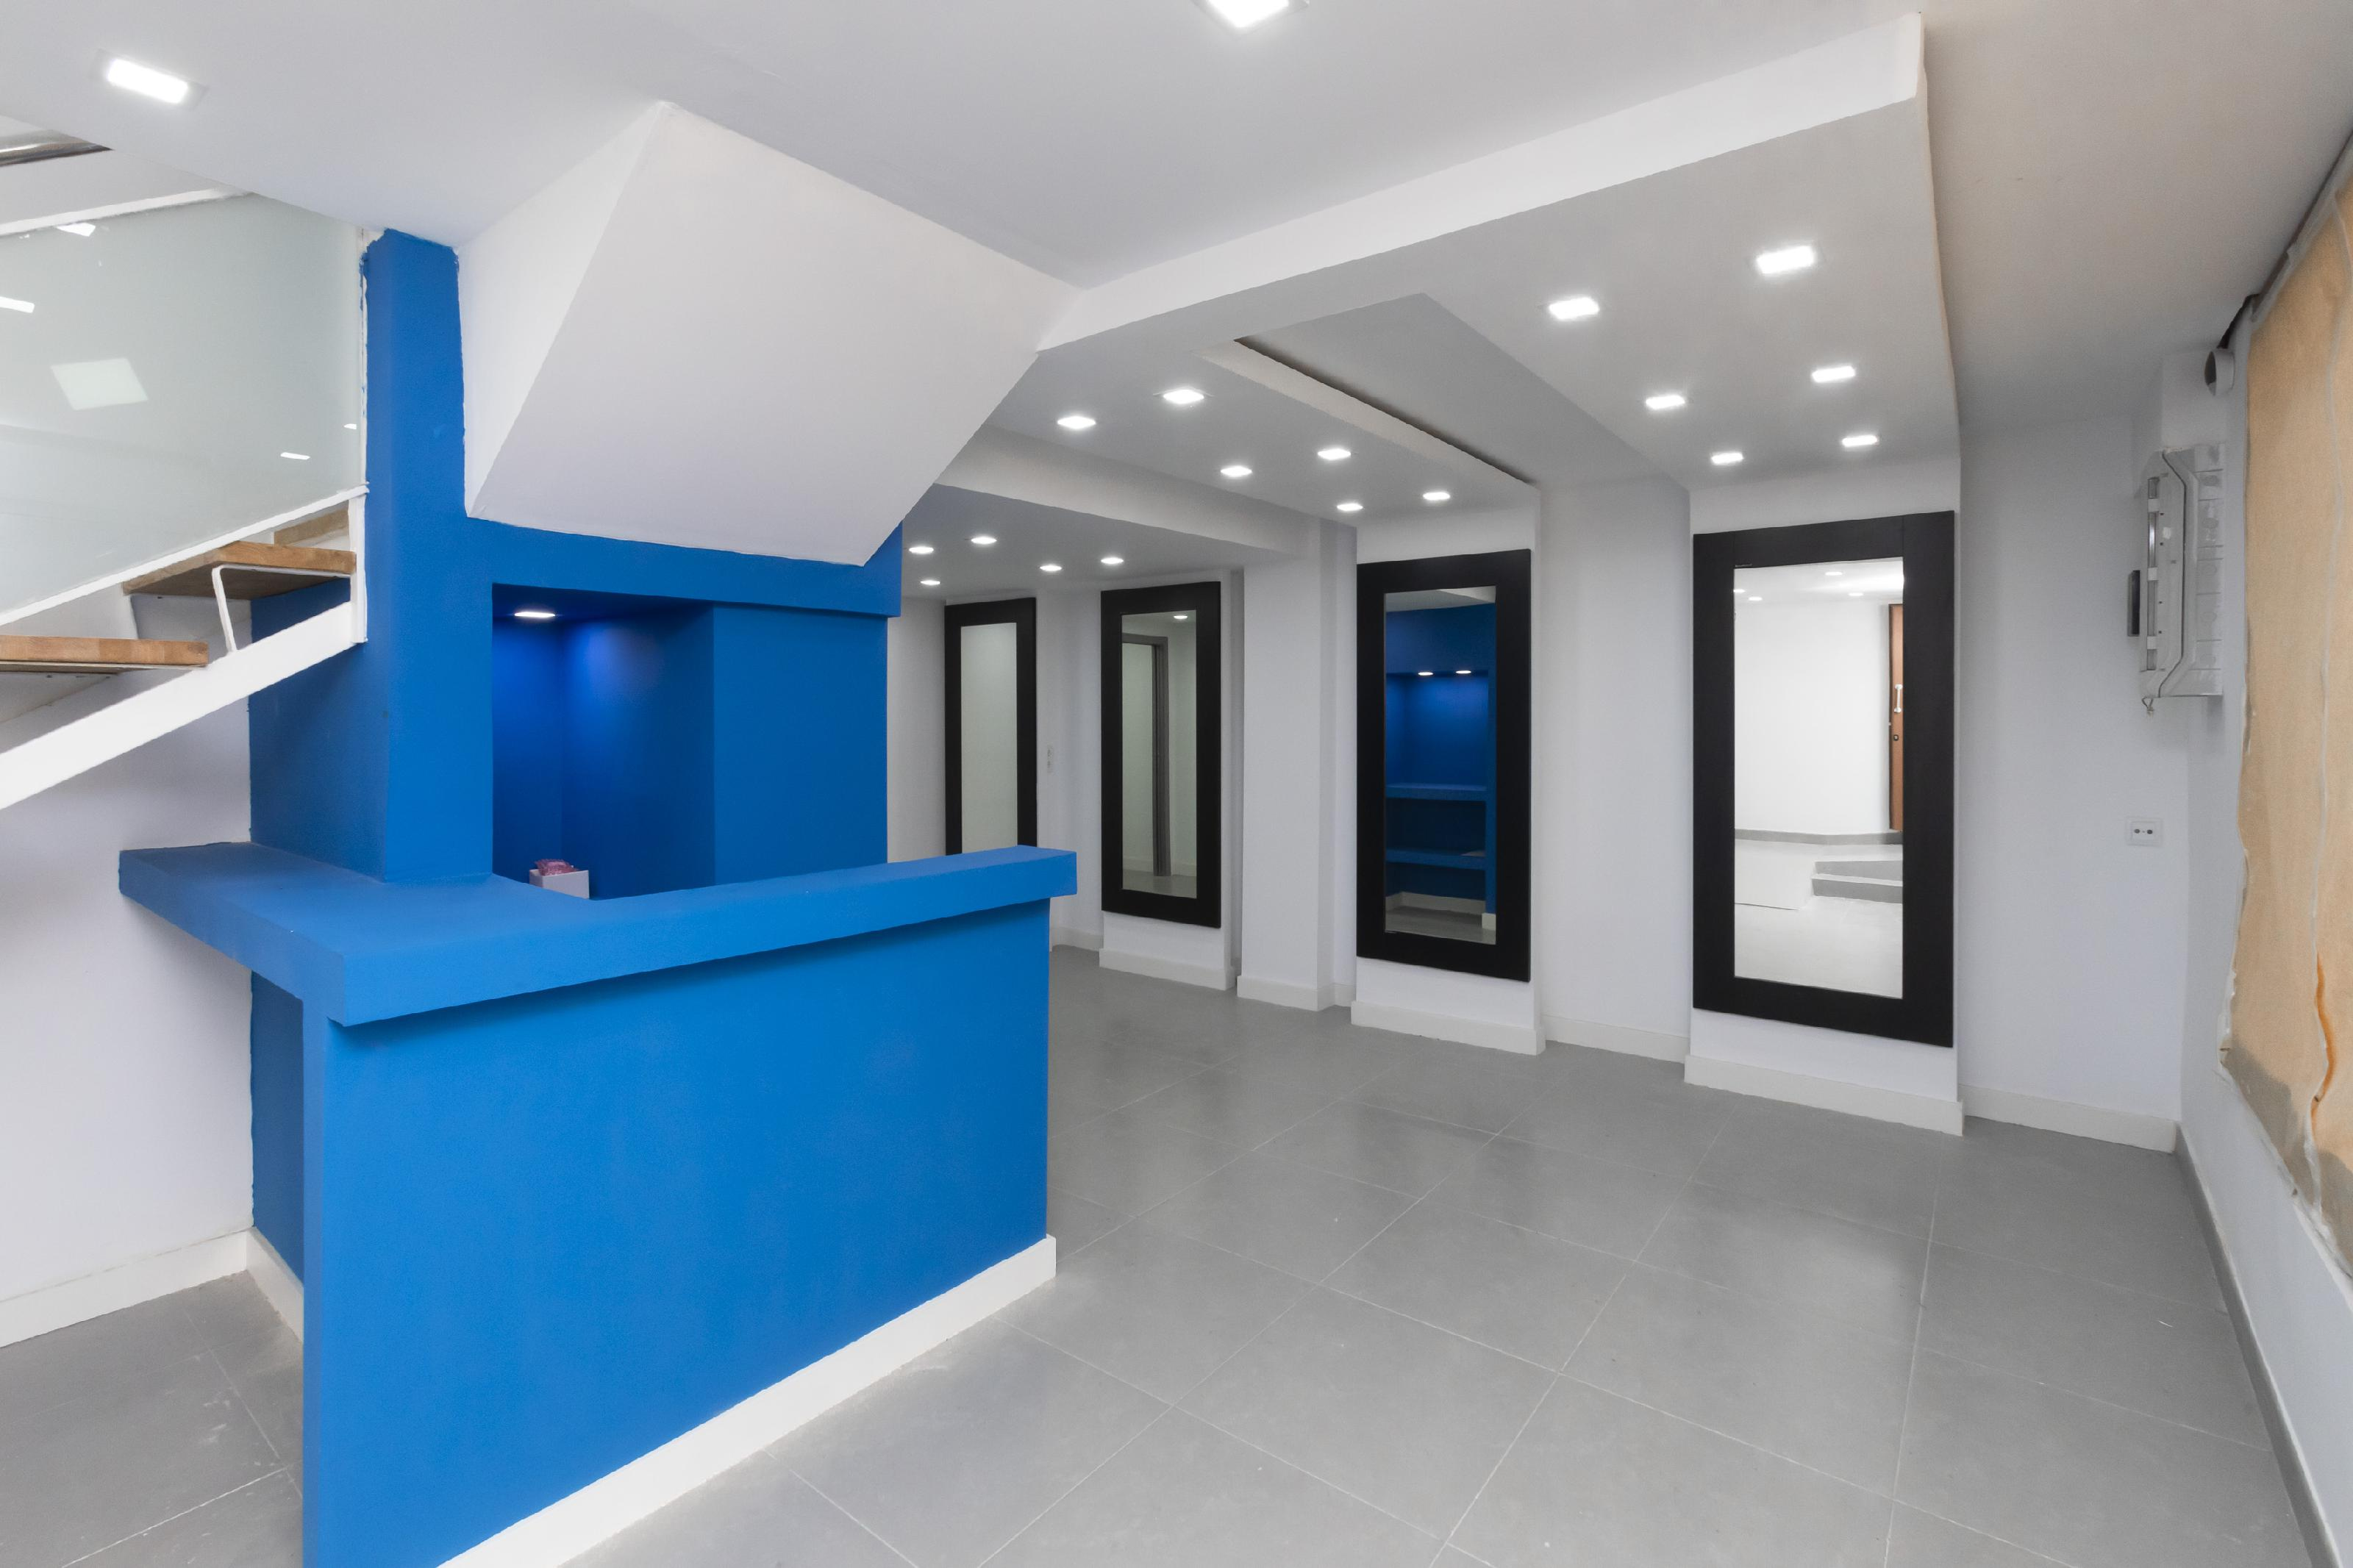 242978 Flat for sale in Gràcia, Camp Grassot and Gràcia Nova 4